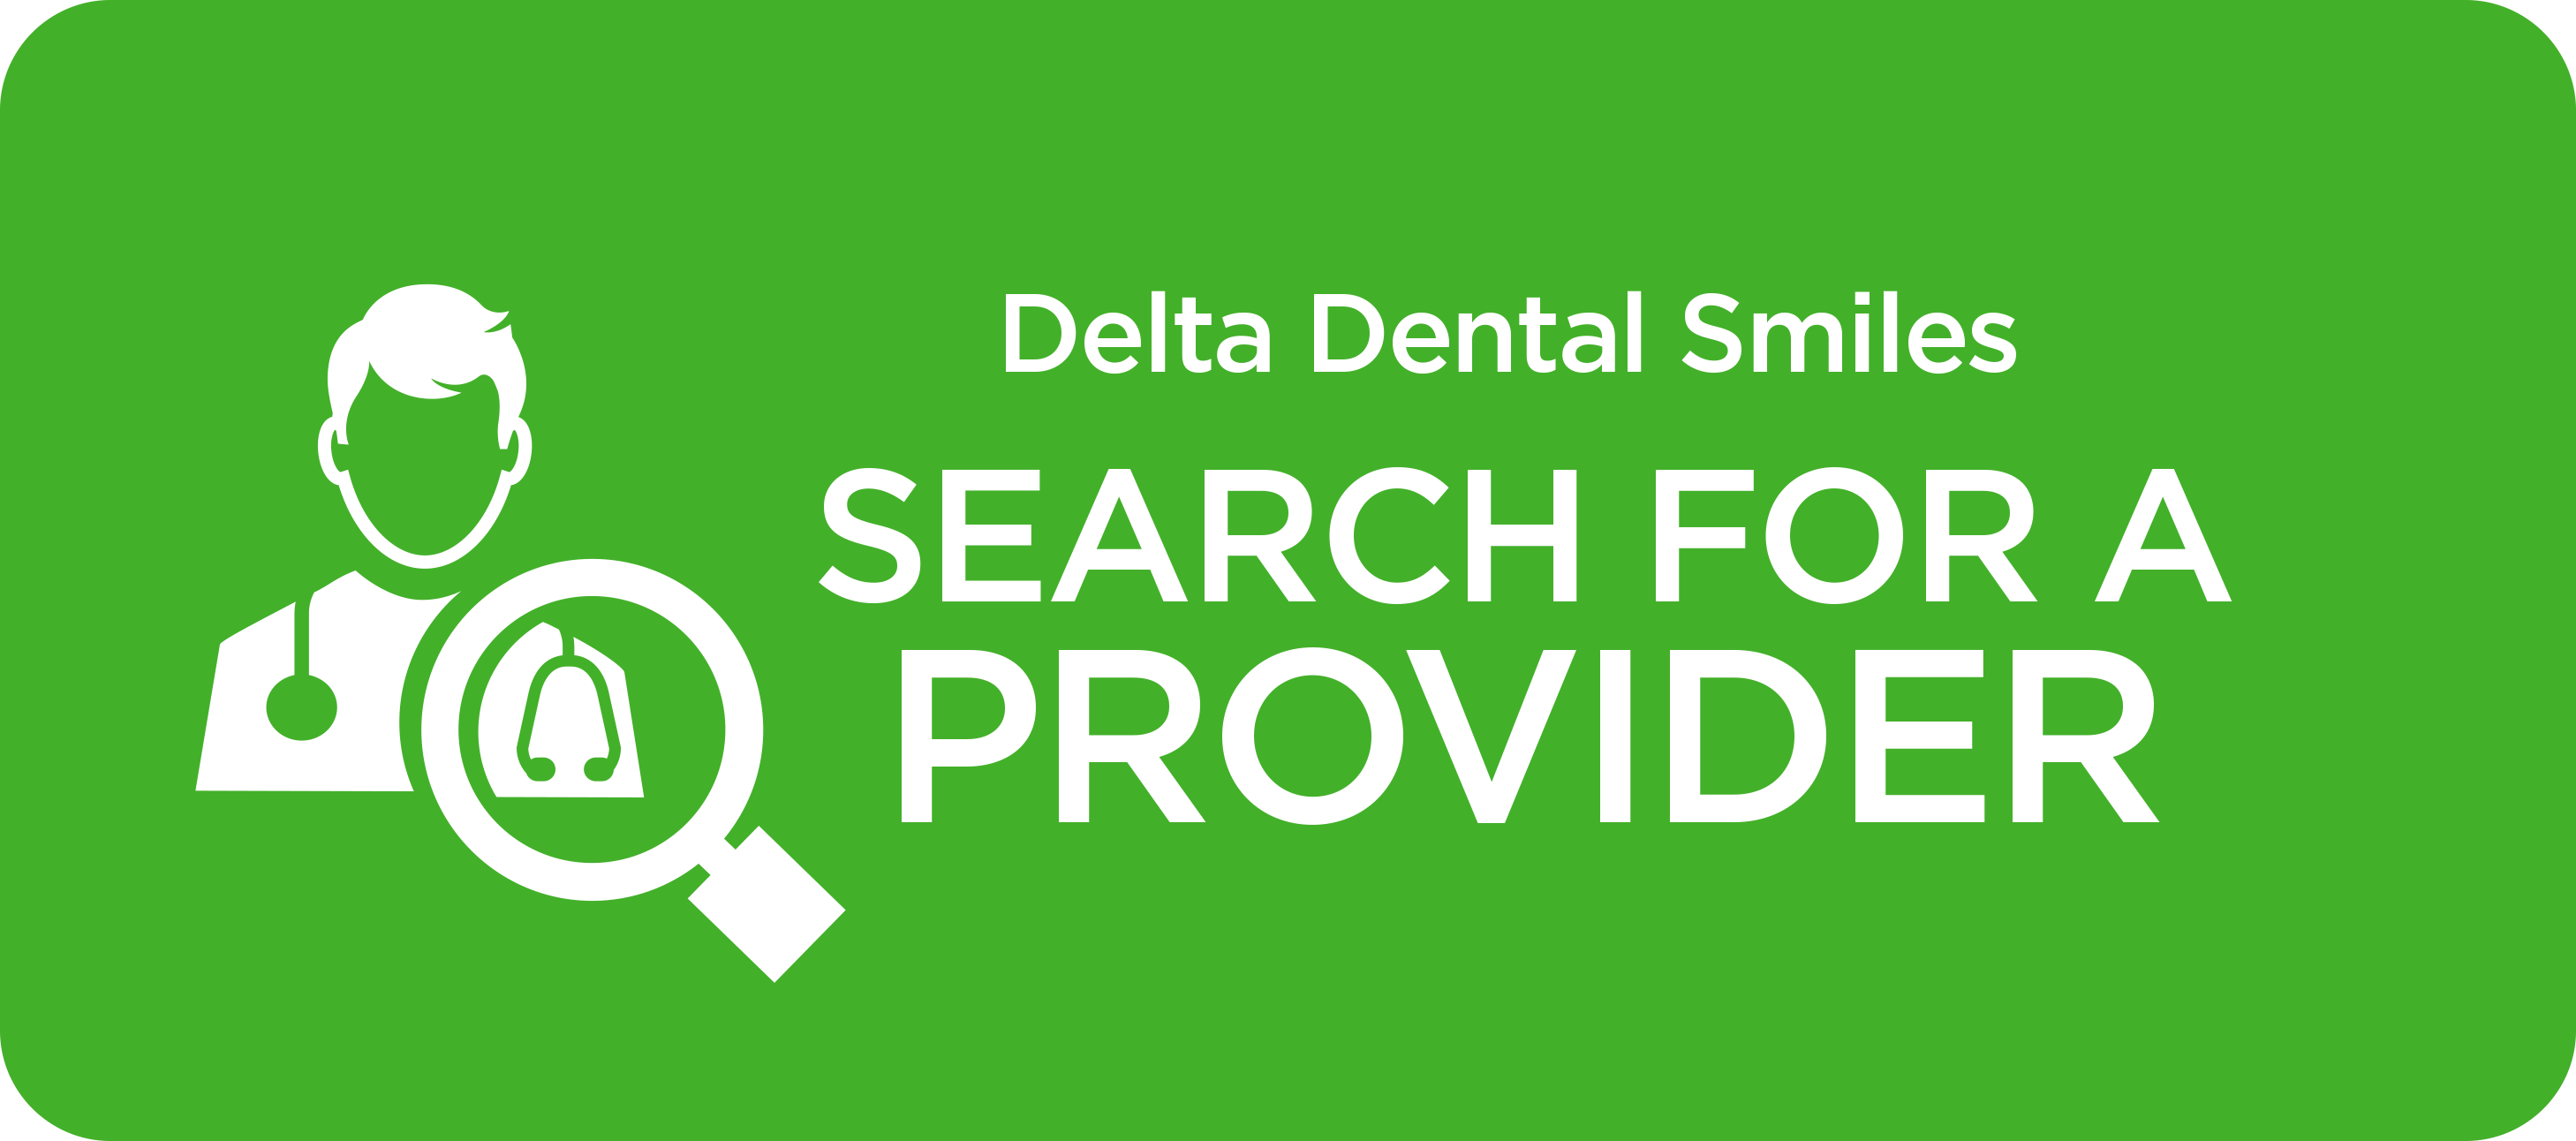 Search For A Provider